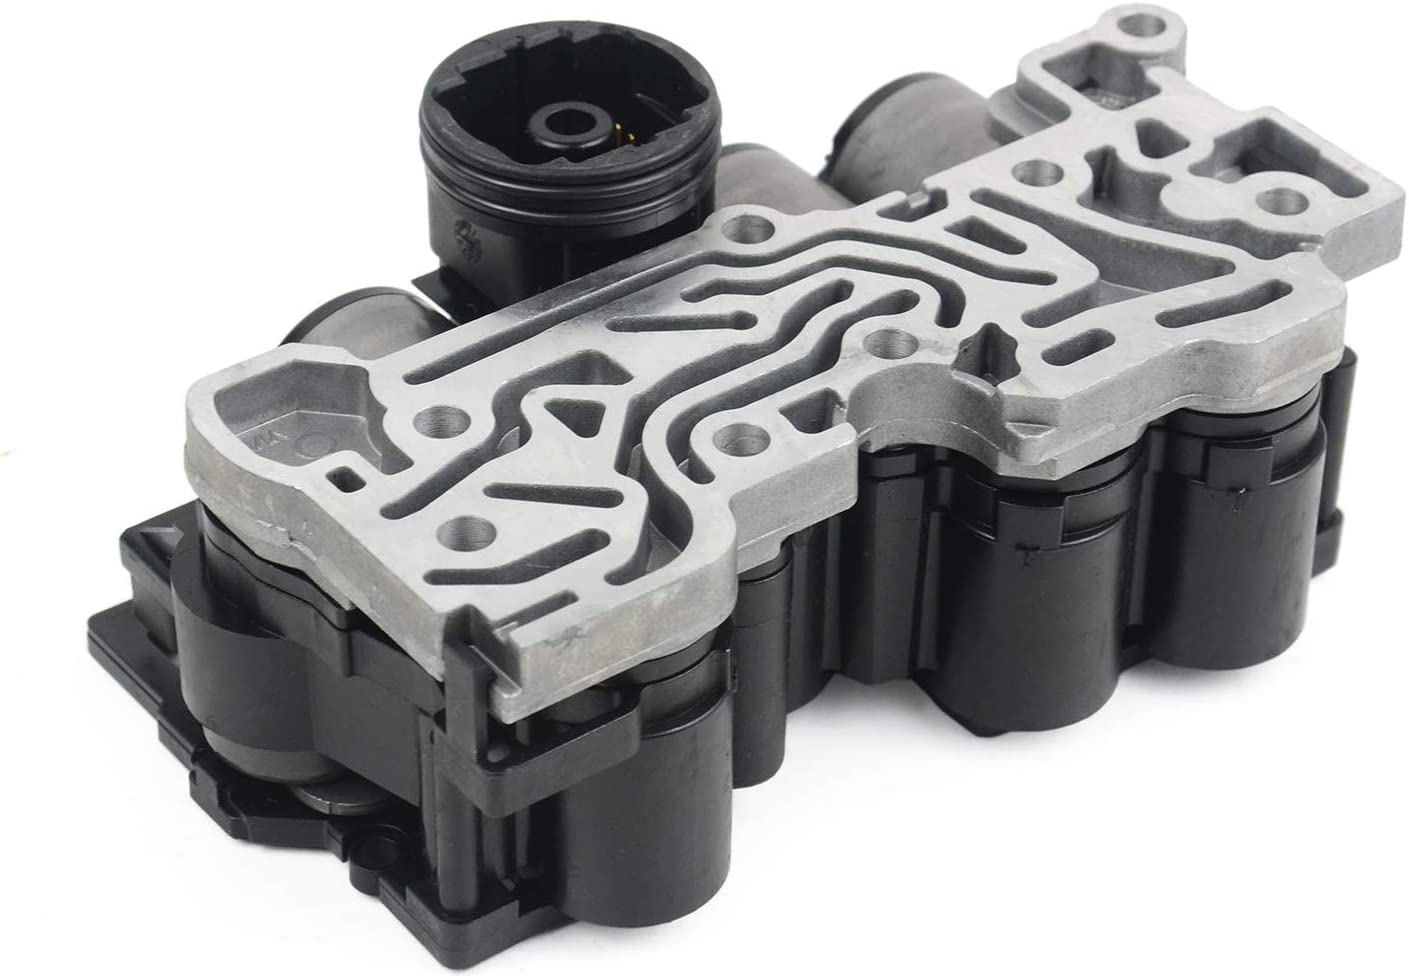 5R55W Explorer Mustang Mercury 02-On 9L2Z-7G234-AA 9L2Z-7G391-AA MSQ-CD Transmission Solenoid Block Pack for Ford 5R55S